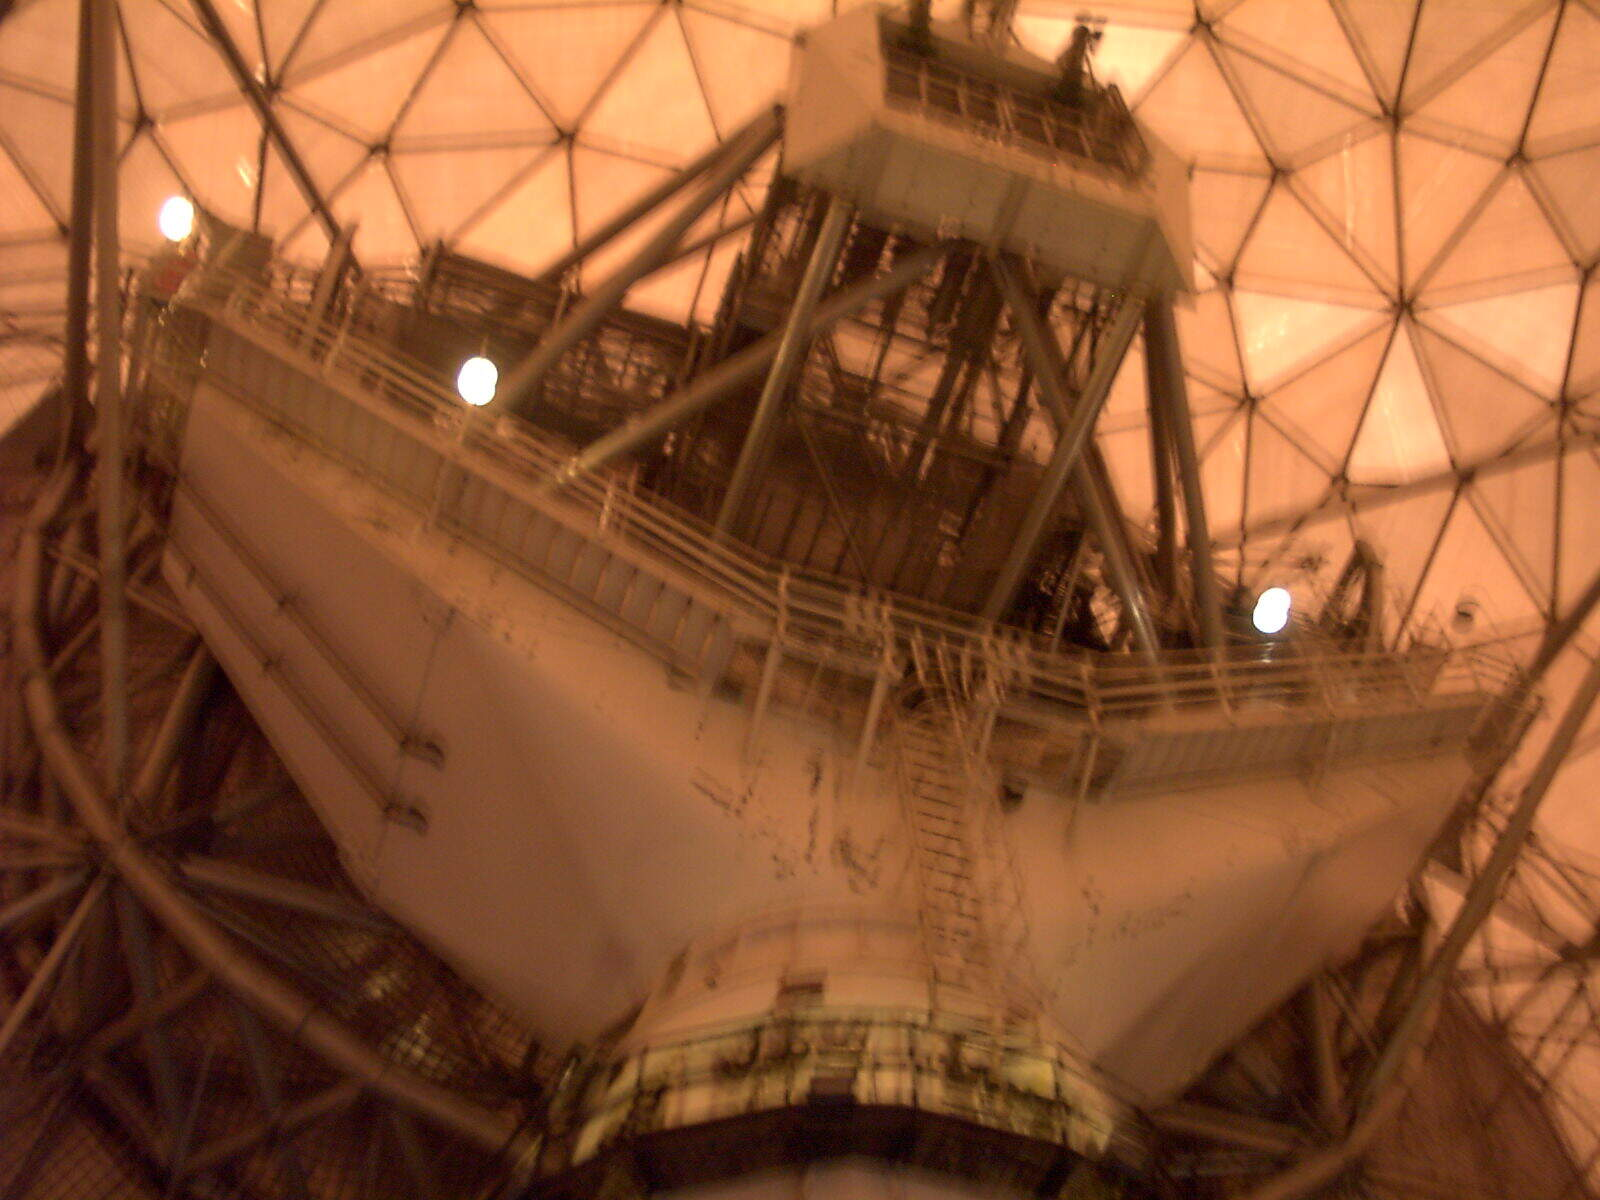 A long climb up to MIT's humongous dish mounted overhead crane